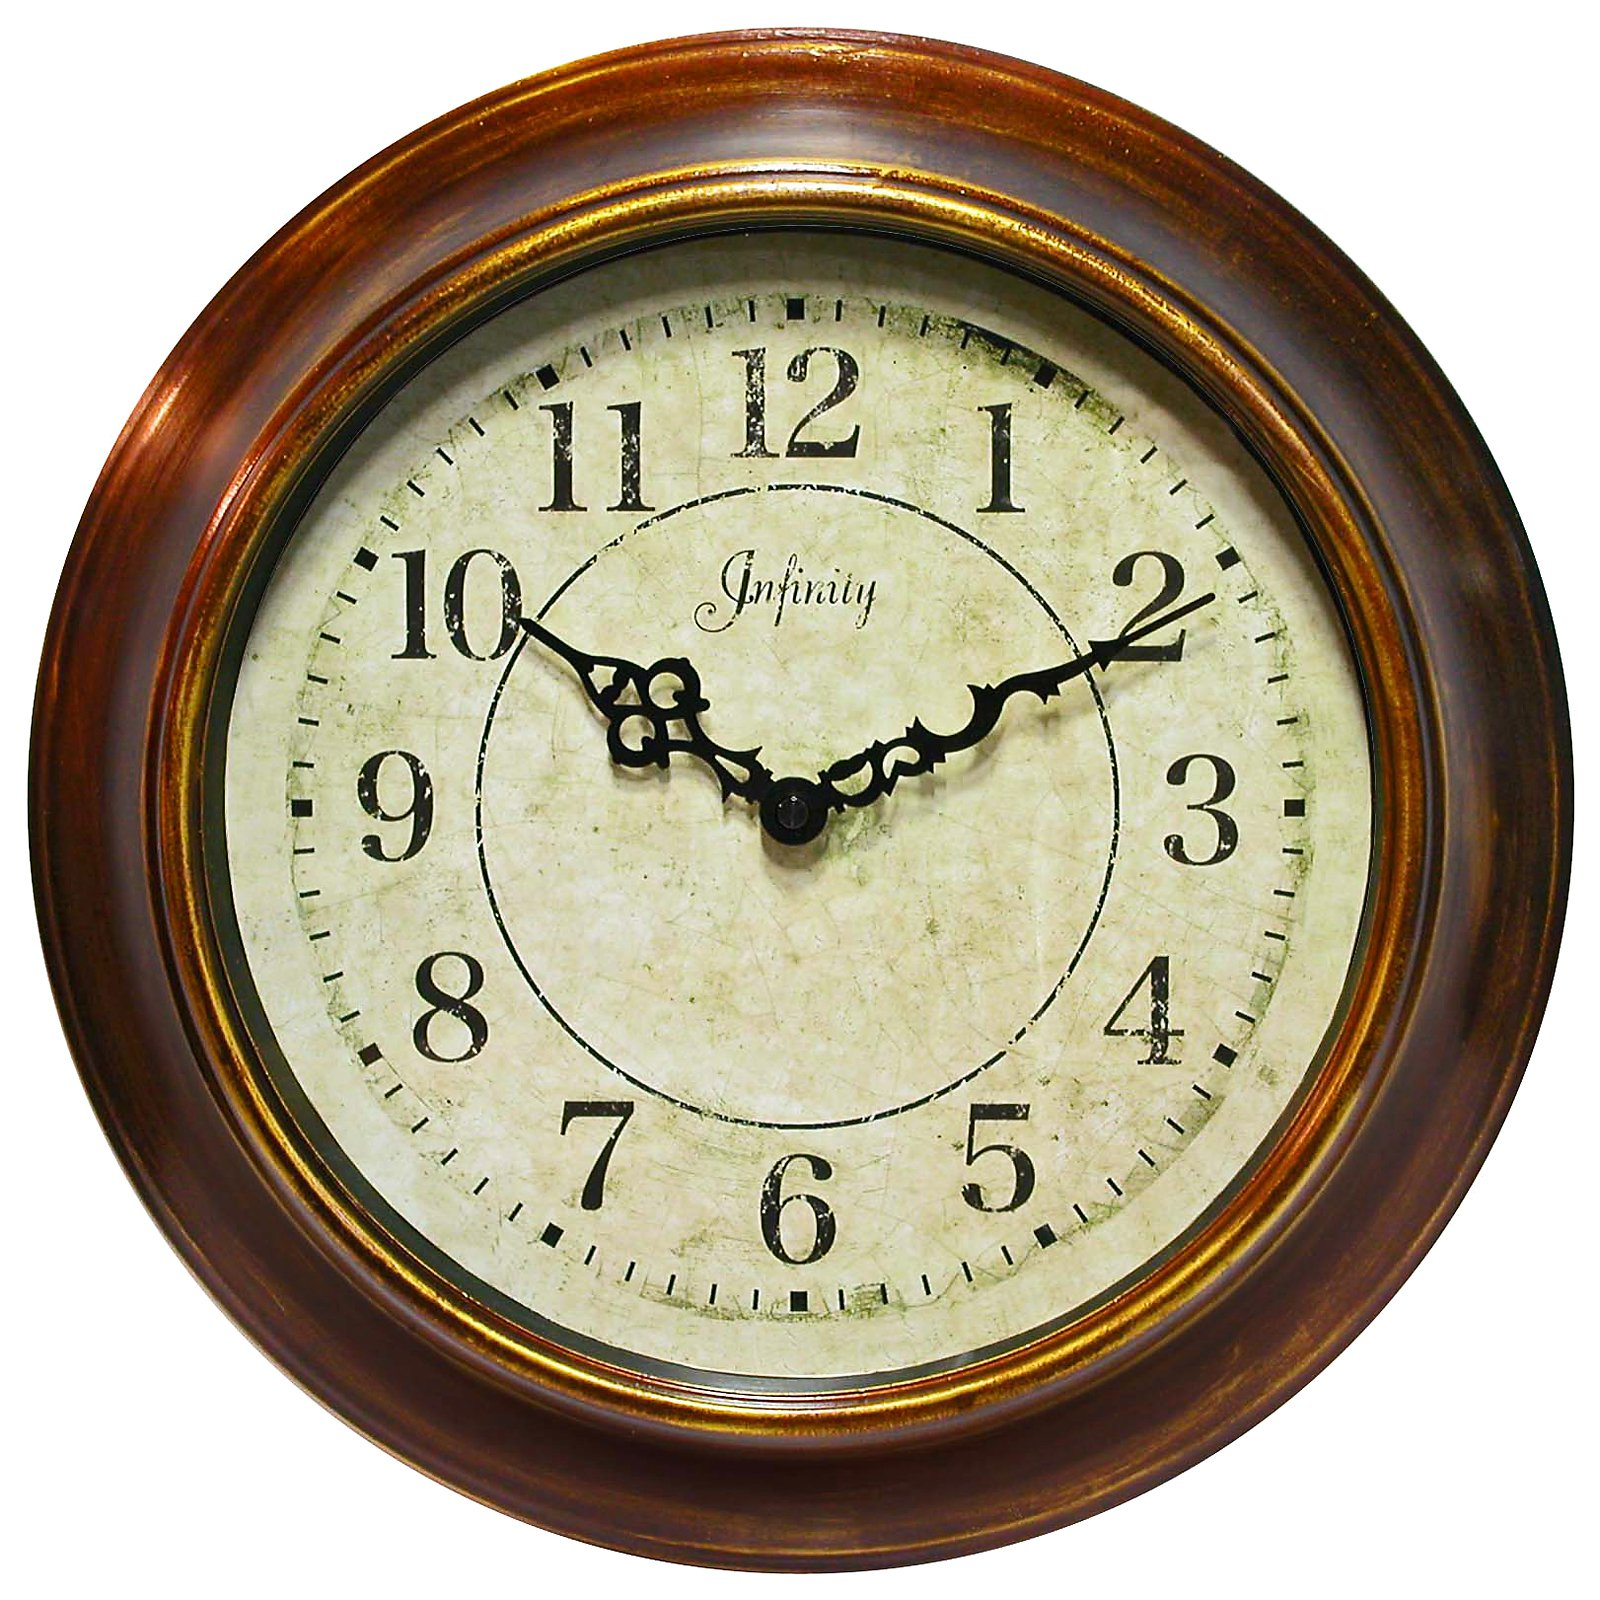 The Keeler 14 in. Wall Clock by Infinity Instruments